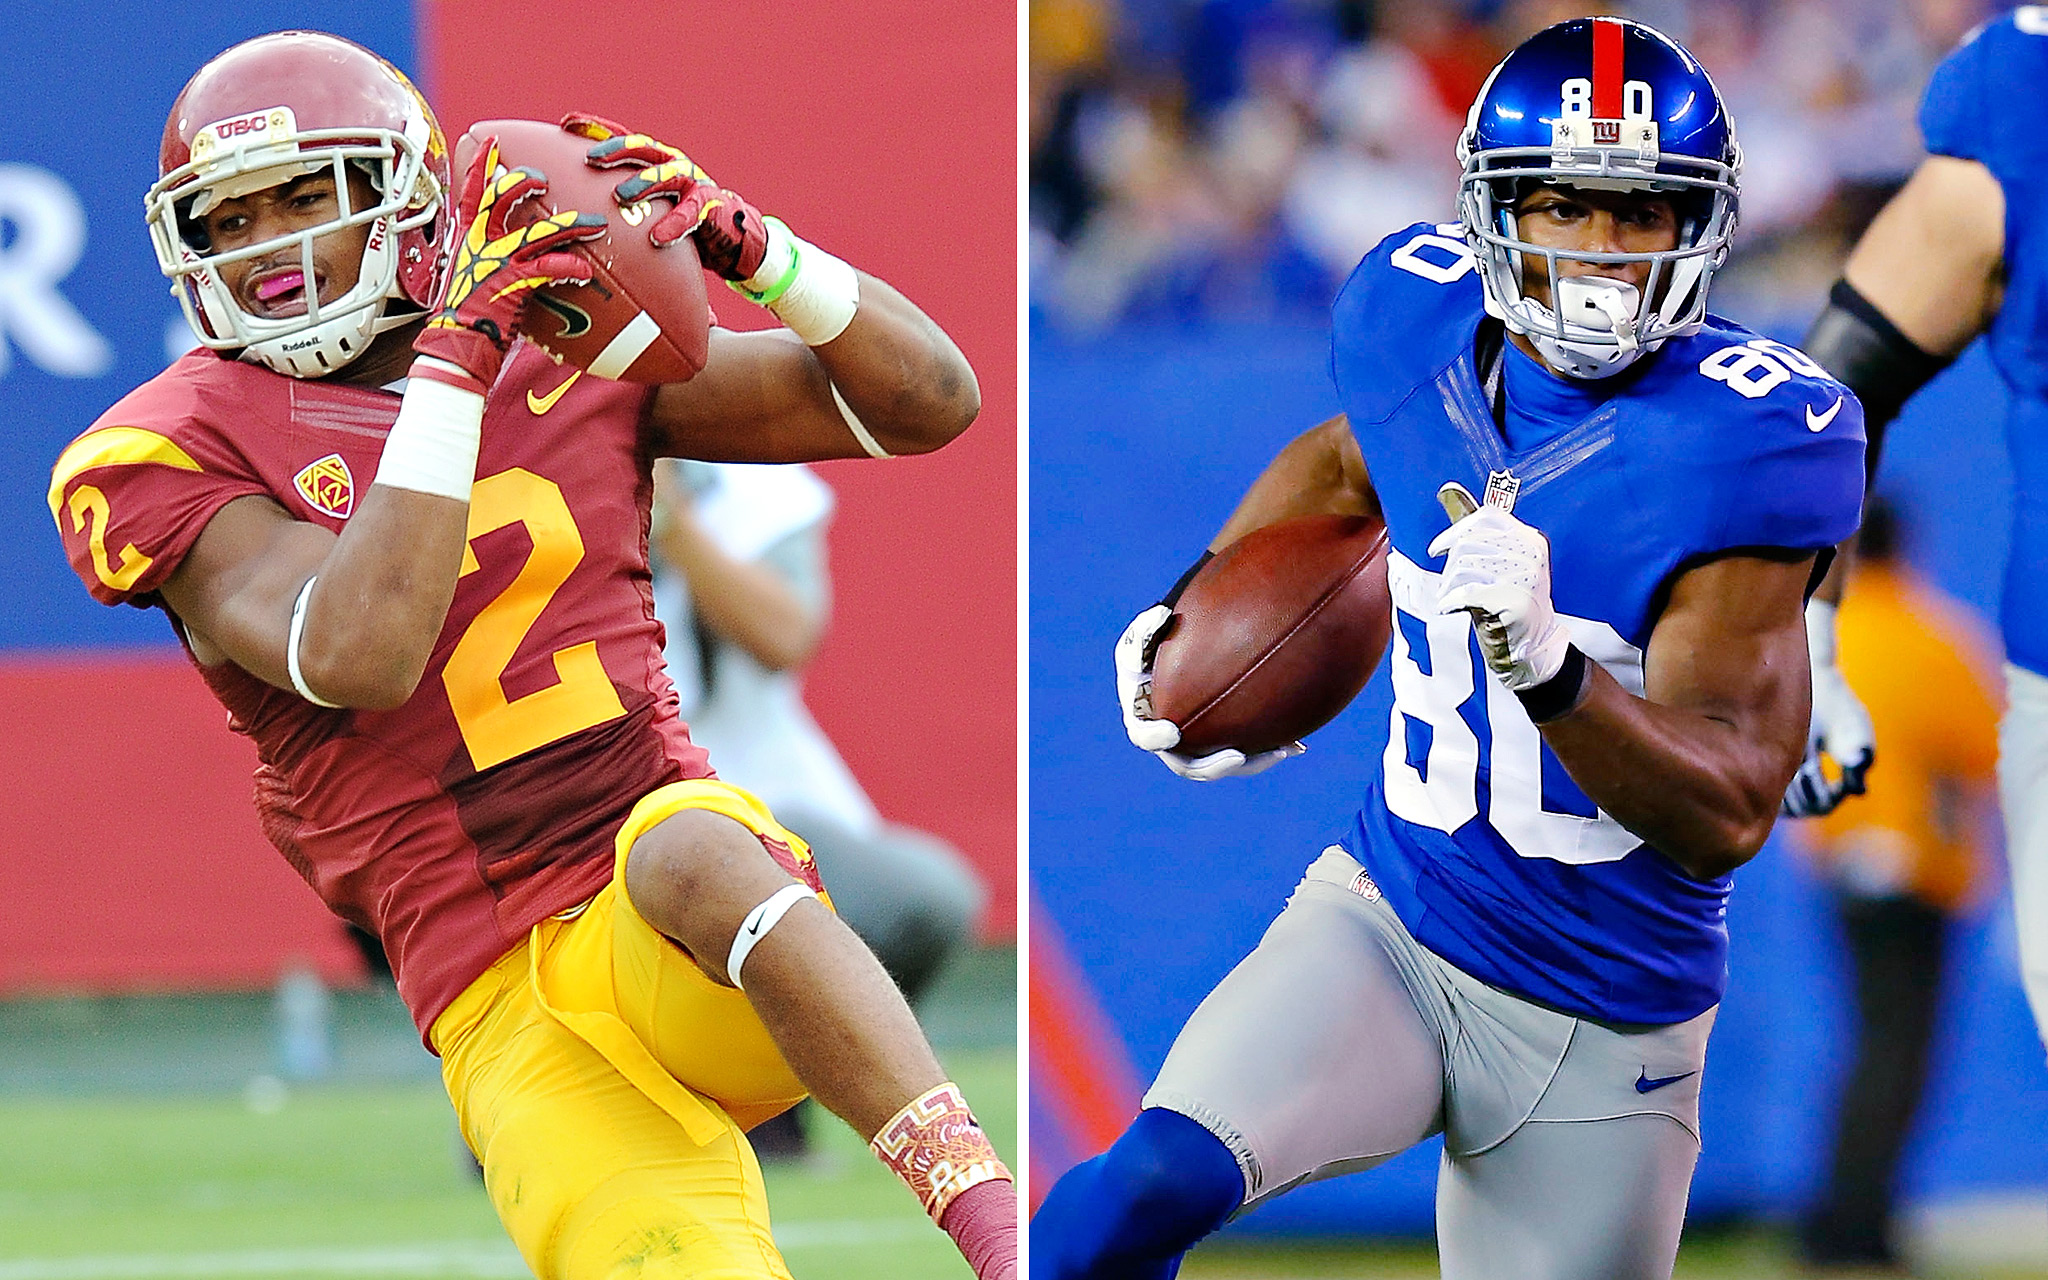 Robert Woods, USC/Victor Cruz, NY Giants